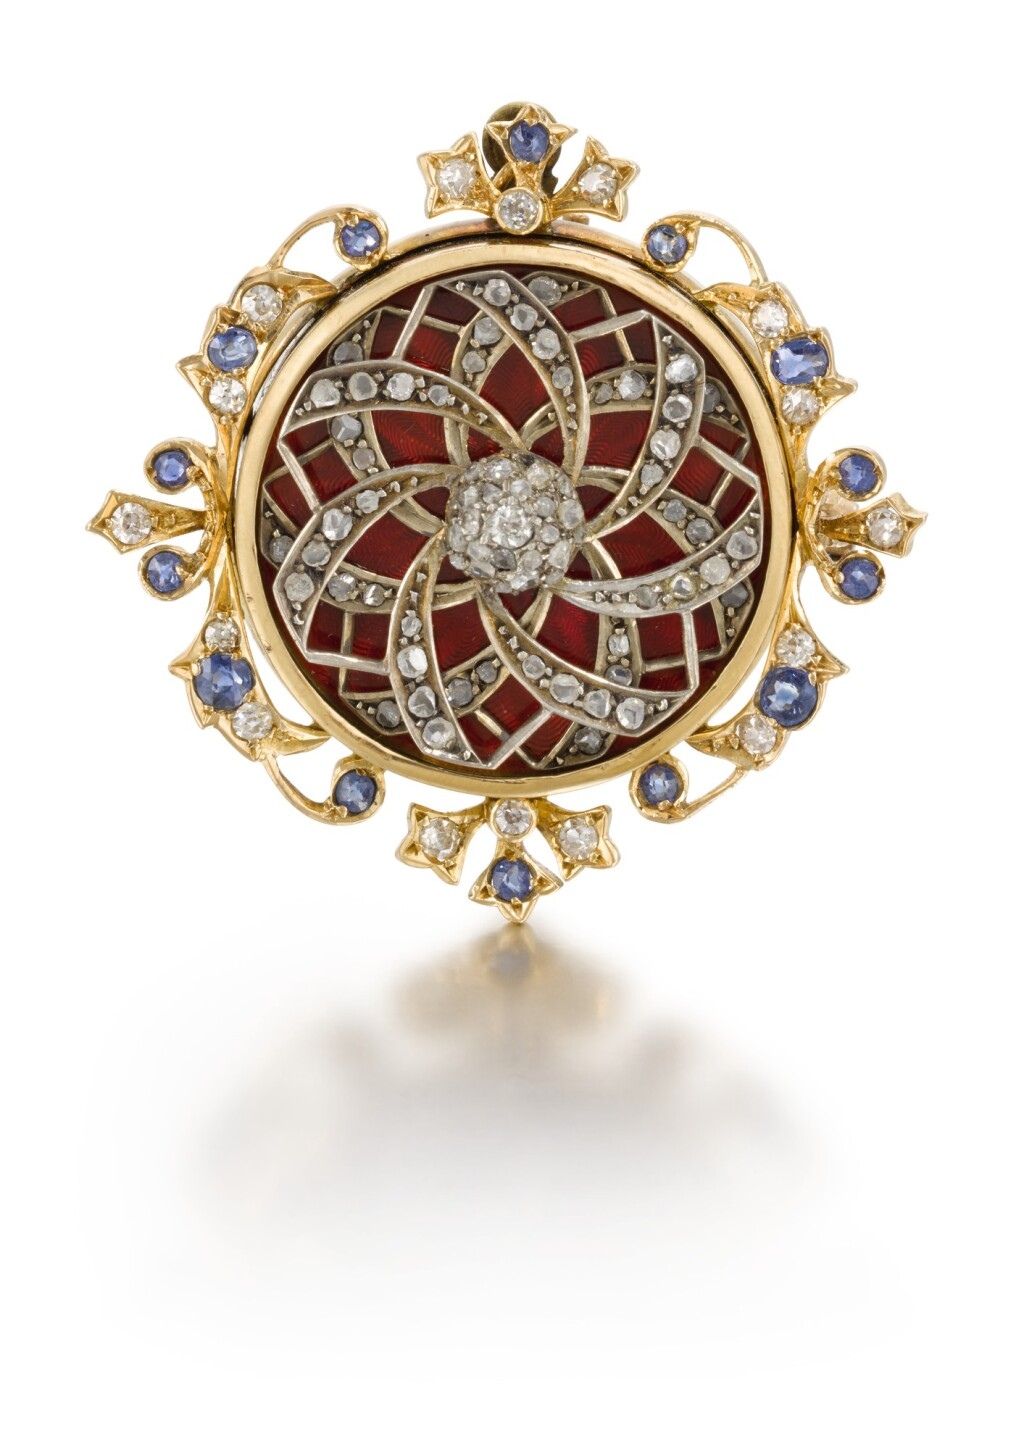 SWISS | A GOLD, ENAMEL, DIAMOND AND SAPPHIRE-SET AUTOMATON PENDANT-BROOCH, MADE FOR THE CHINESE MARKET  CIRCA 1880